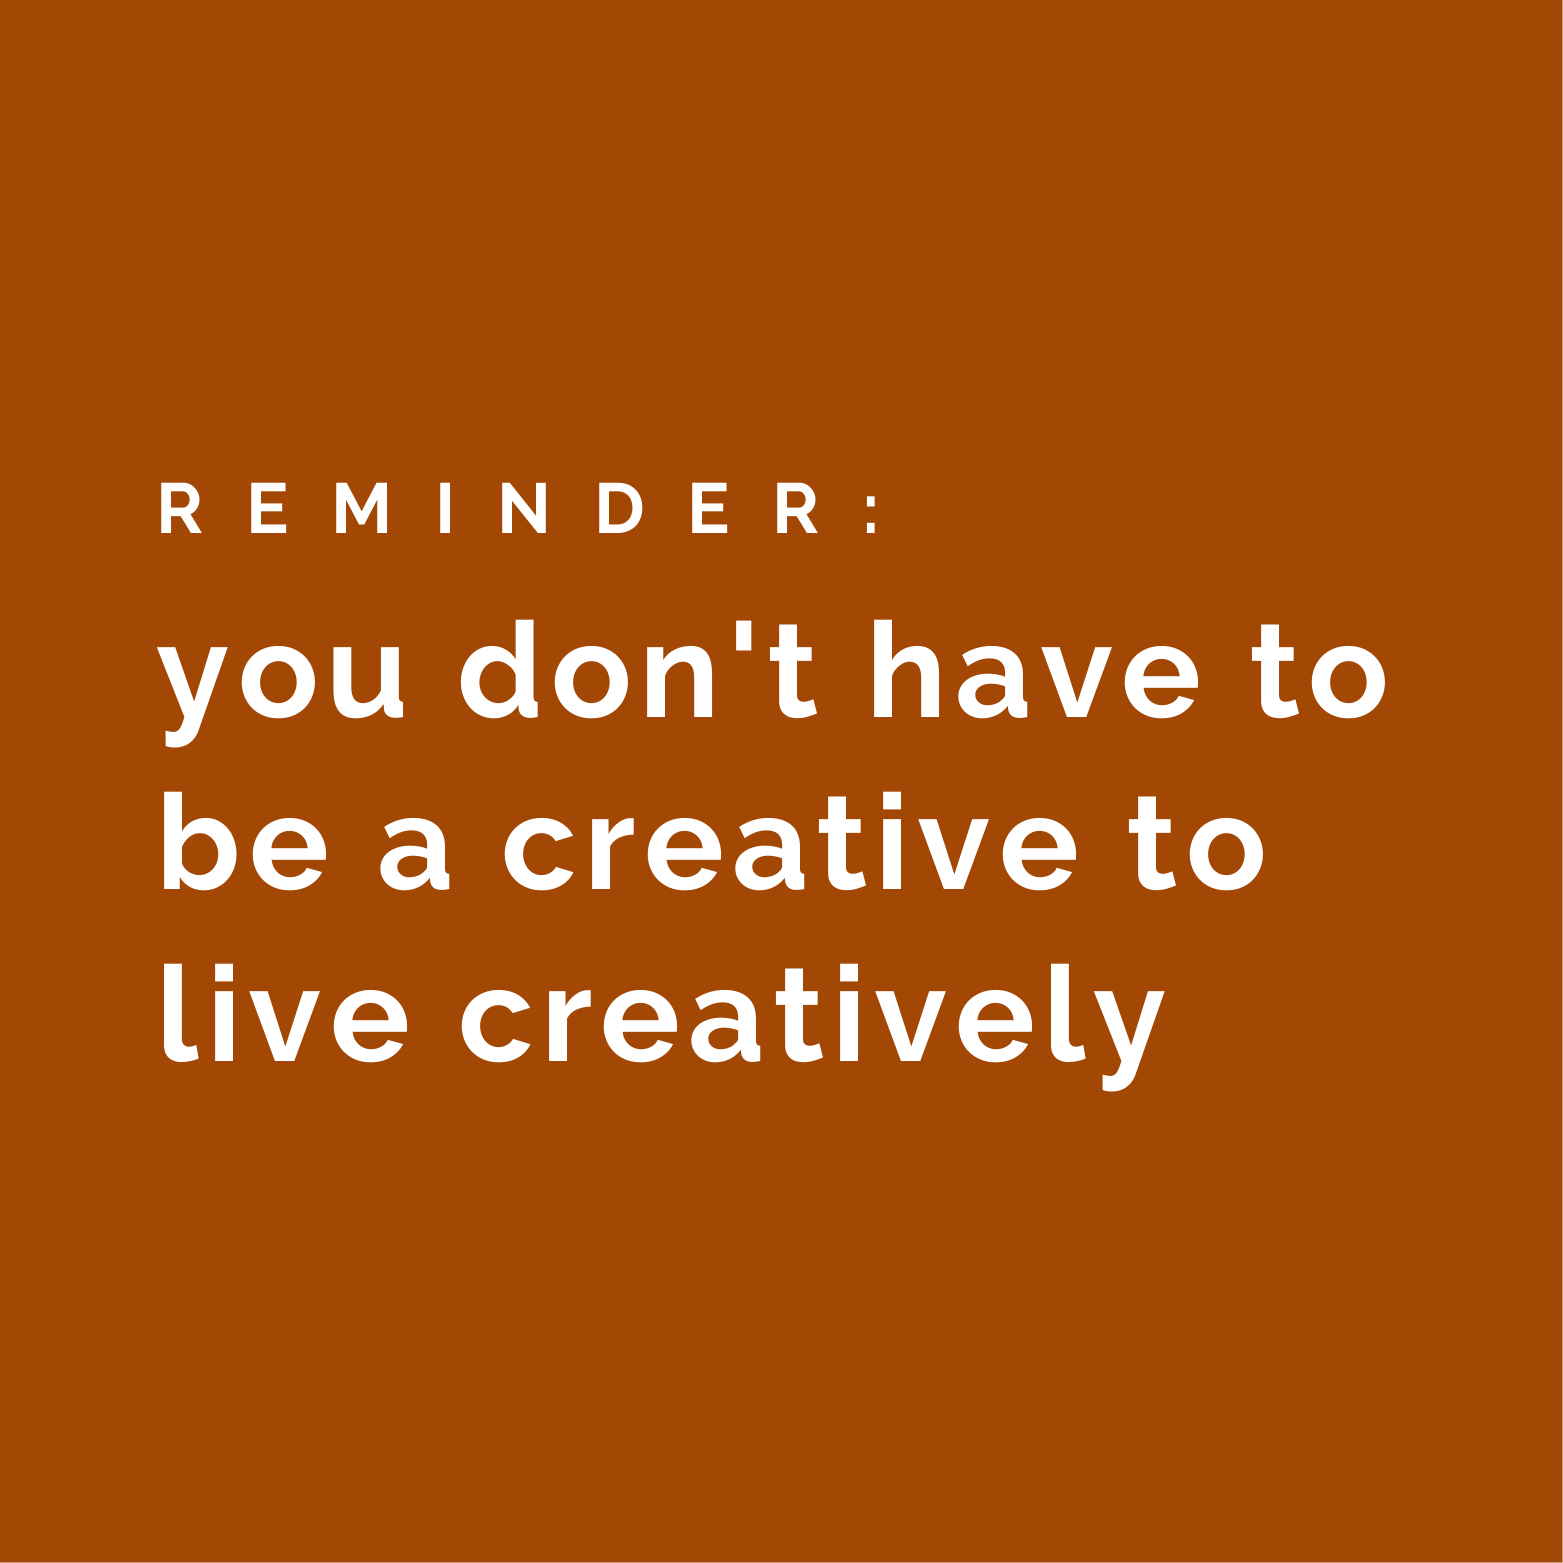 you don't have to be a creative to live creatively